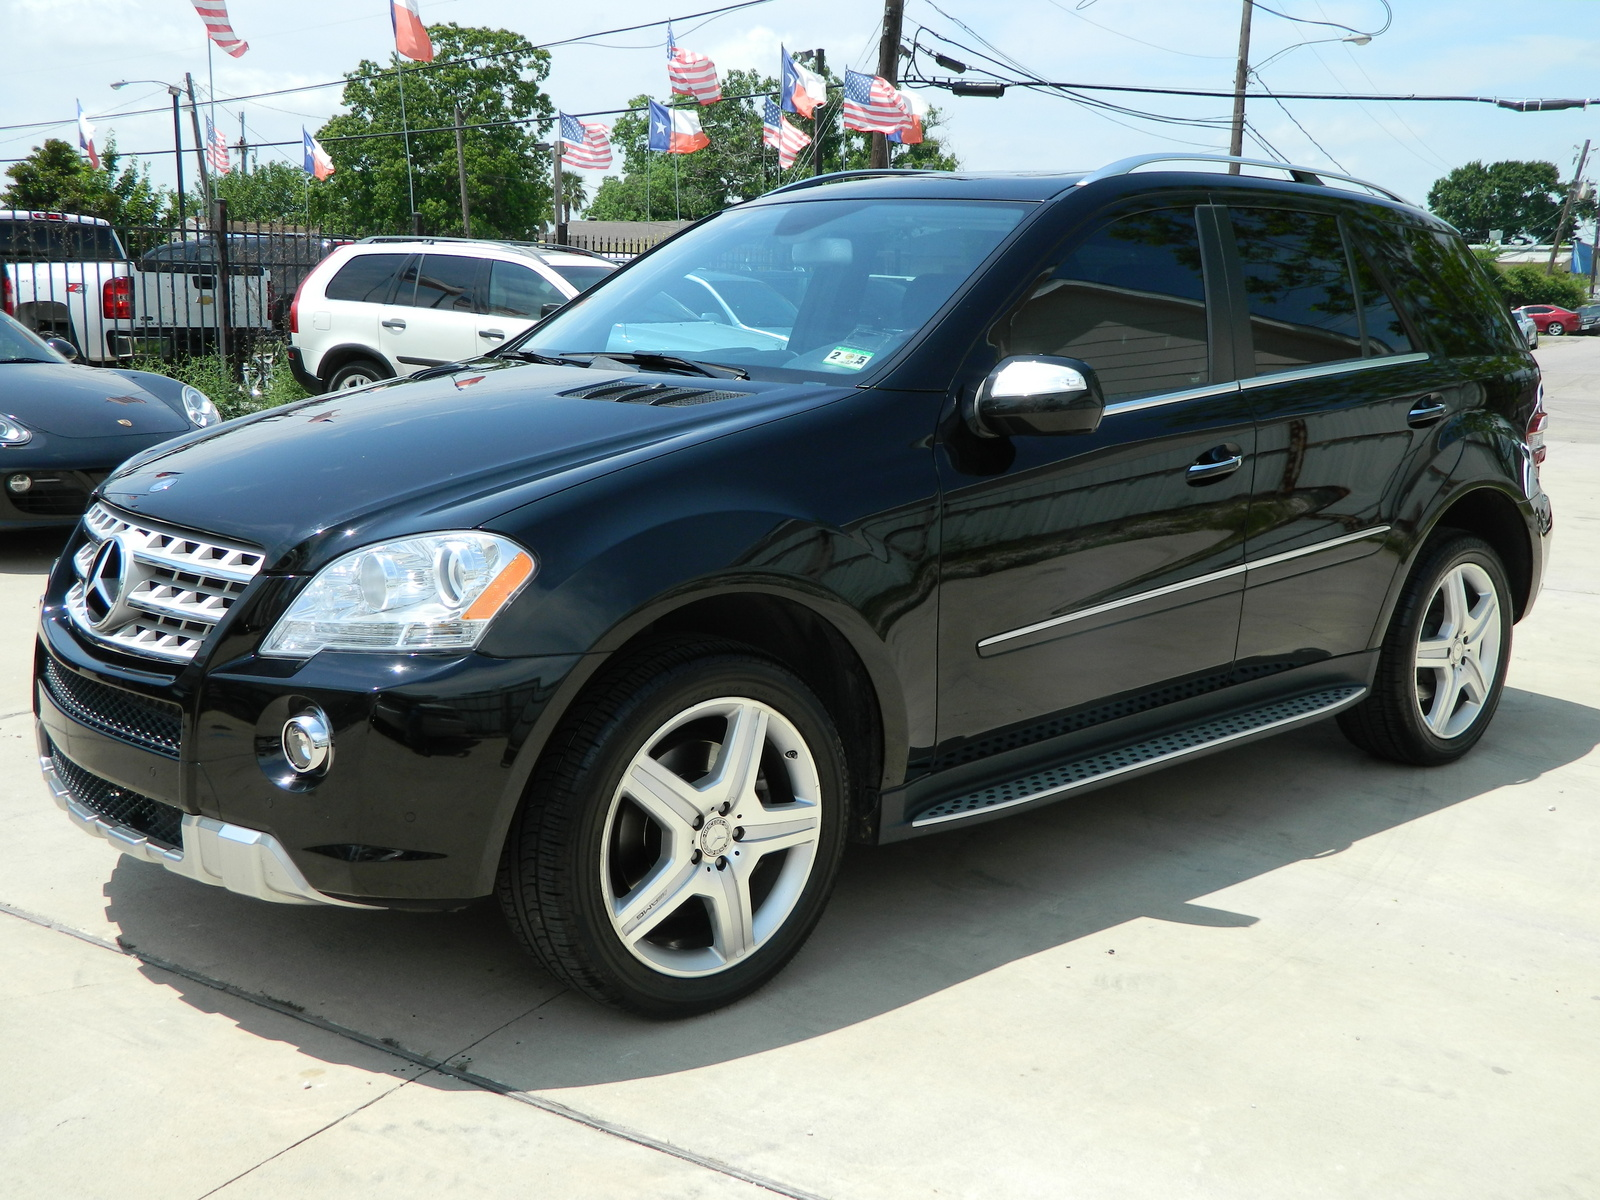 2010 mercedes benz m class pictures cargurus for Mercedes benz ml550 price